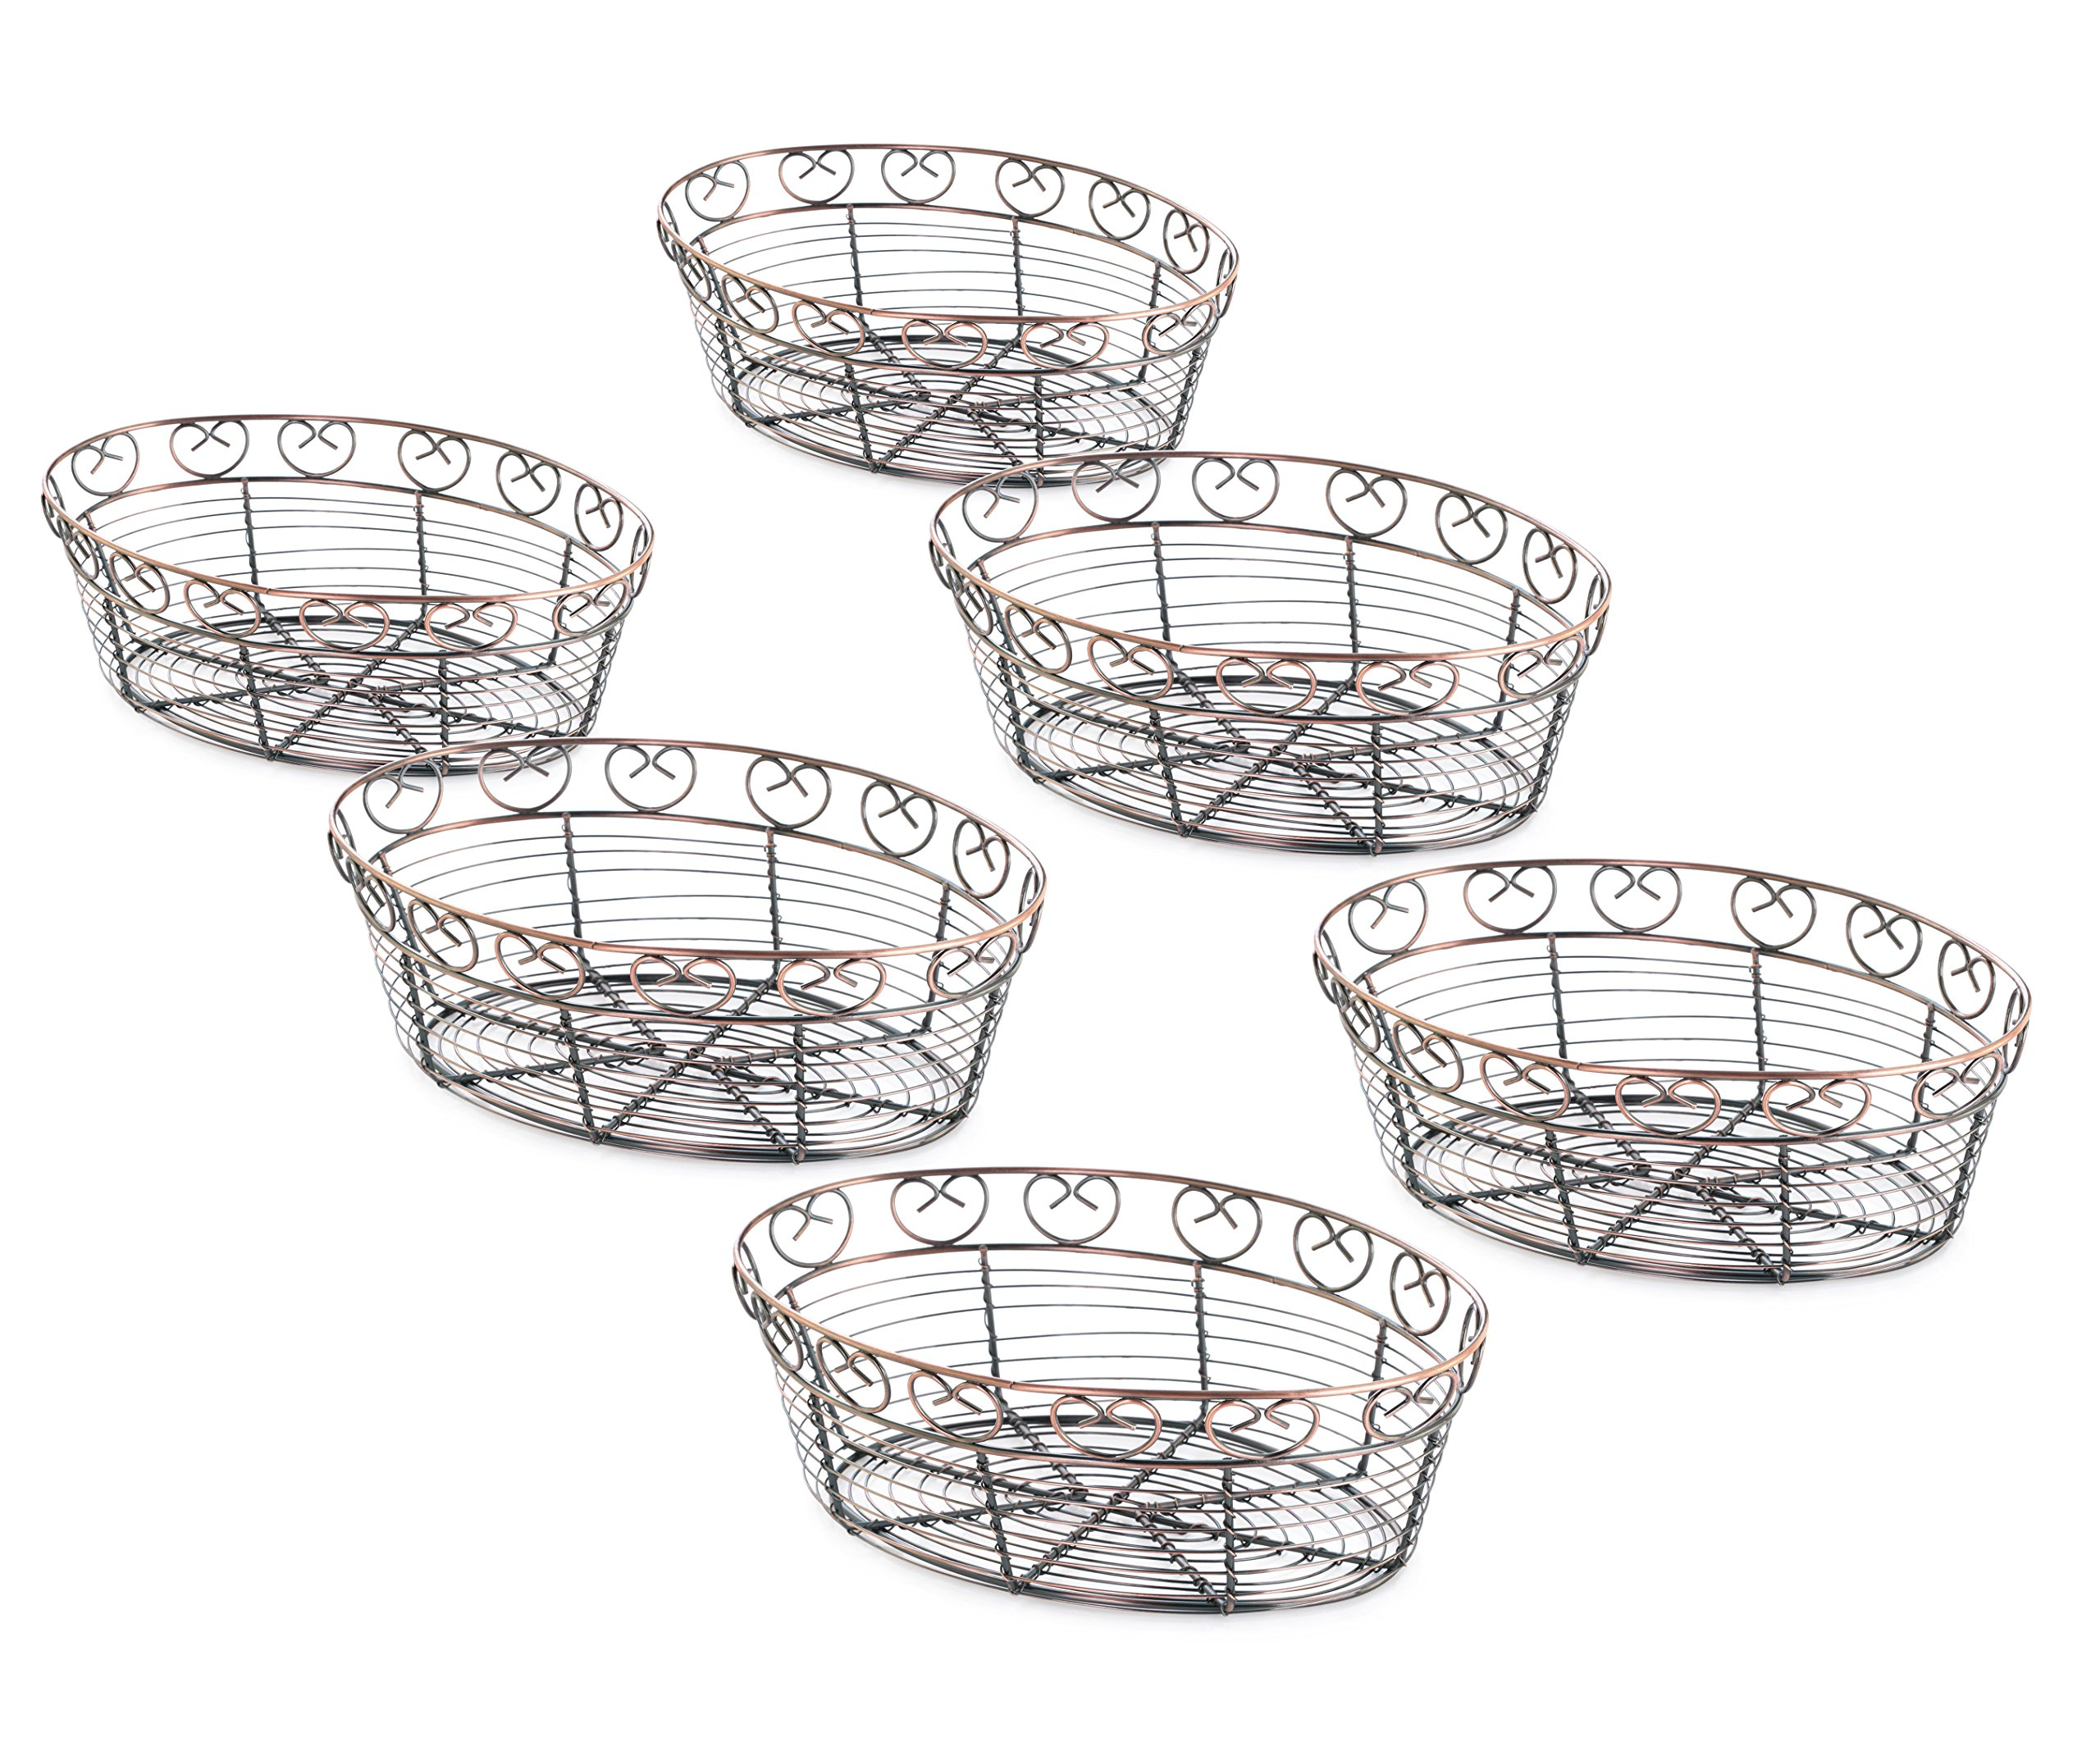 New Star Foodservice 22117 Antique Bronze Finished Oval Wire Bread Basket, 10 by 6.5 by 3-Inch, Set of 6